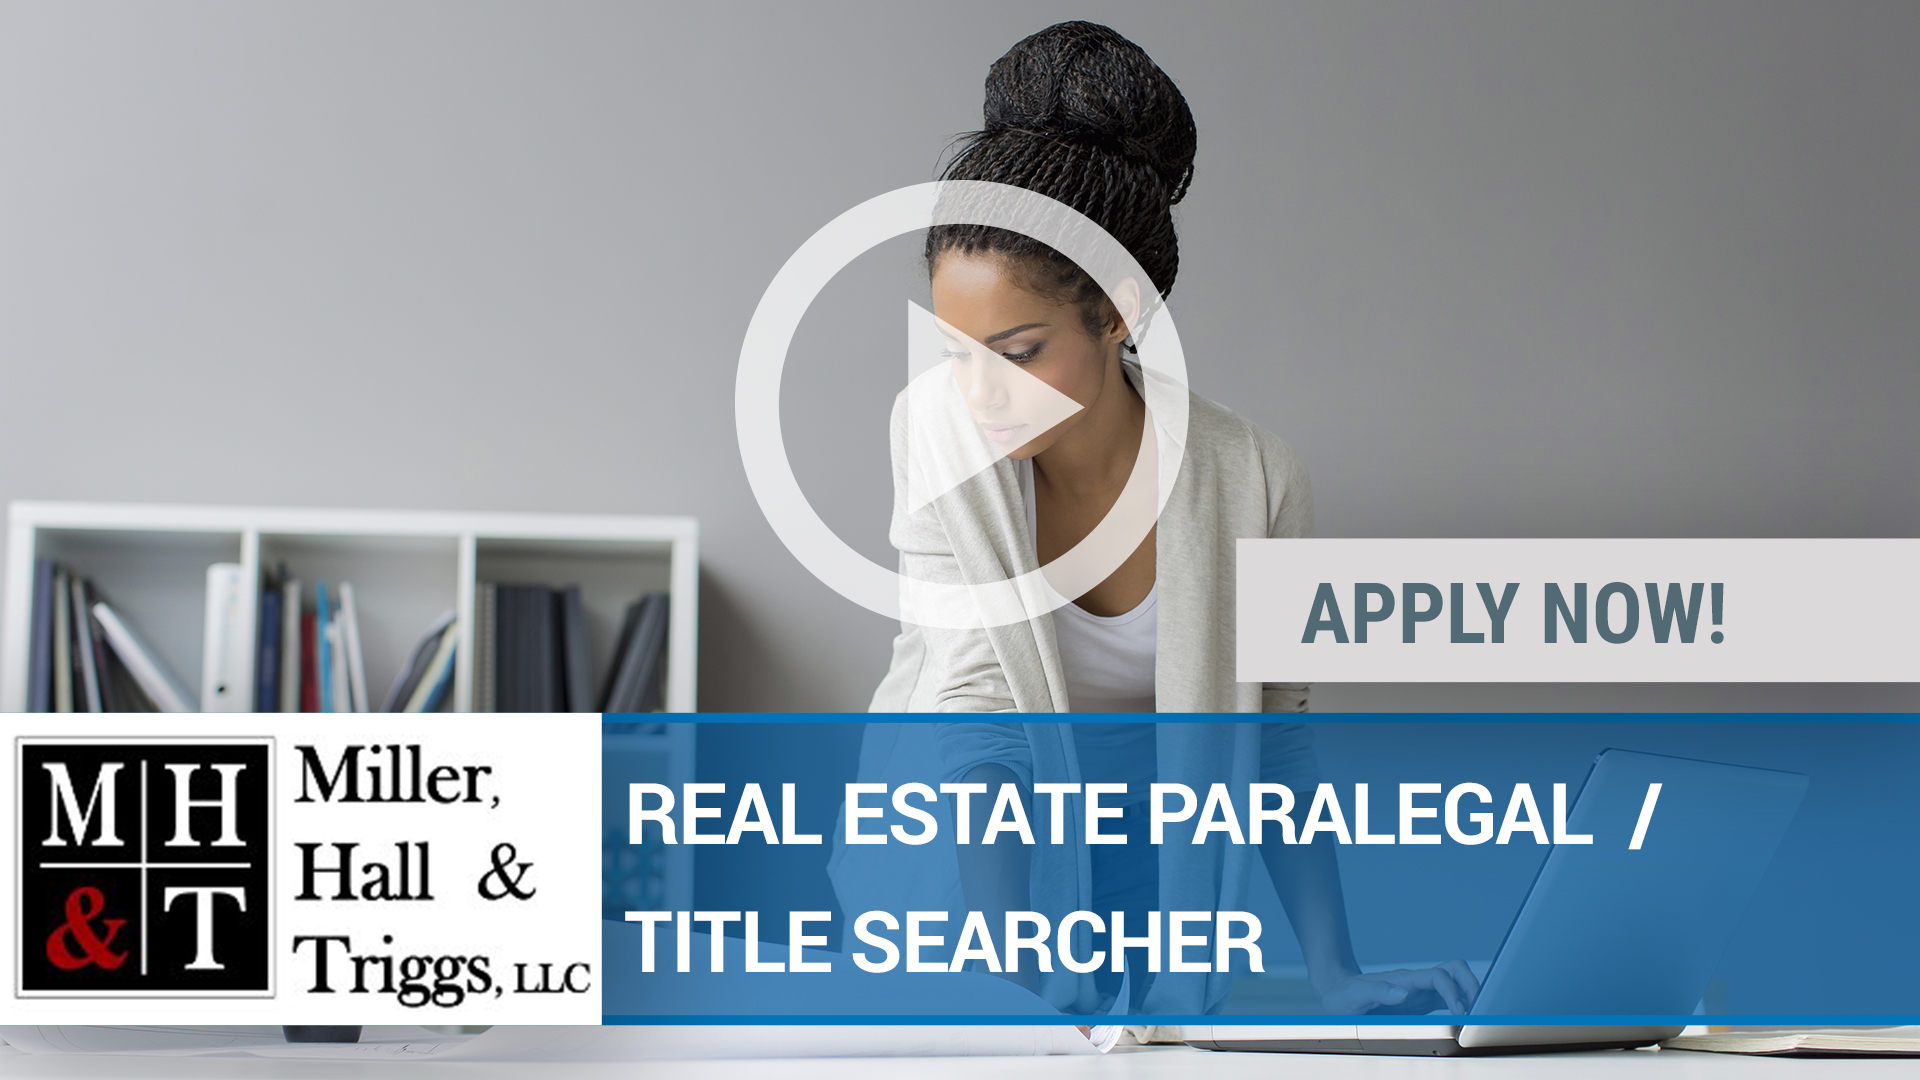 Watch our careers video for available job opening REAL ESTATE PARALEGAL  _ TITLE SEARCHER in Peoria, IL